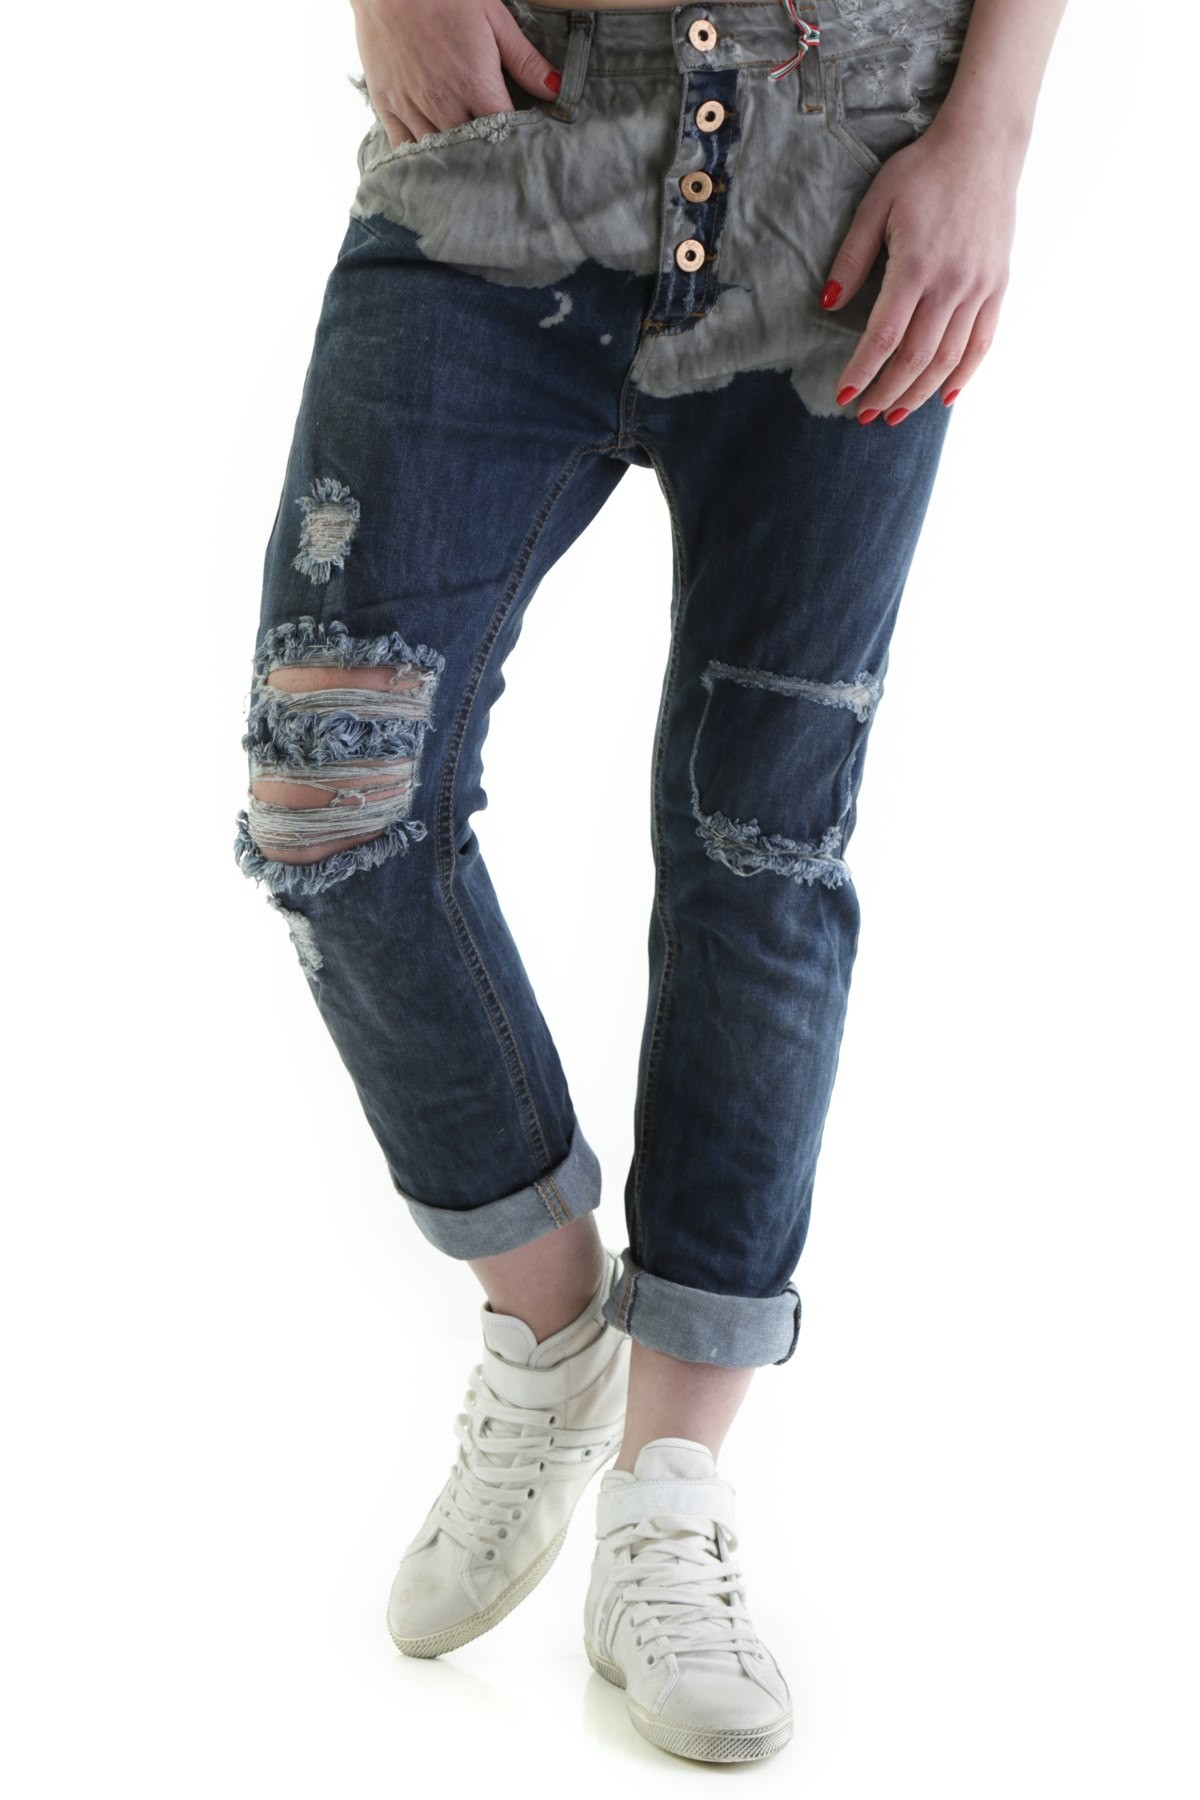 525Marchio: 525; Genere: Donna; Tipologia: Jeans;